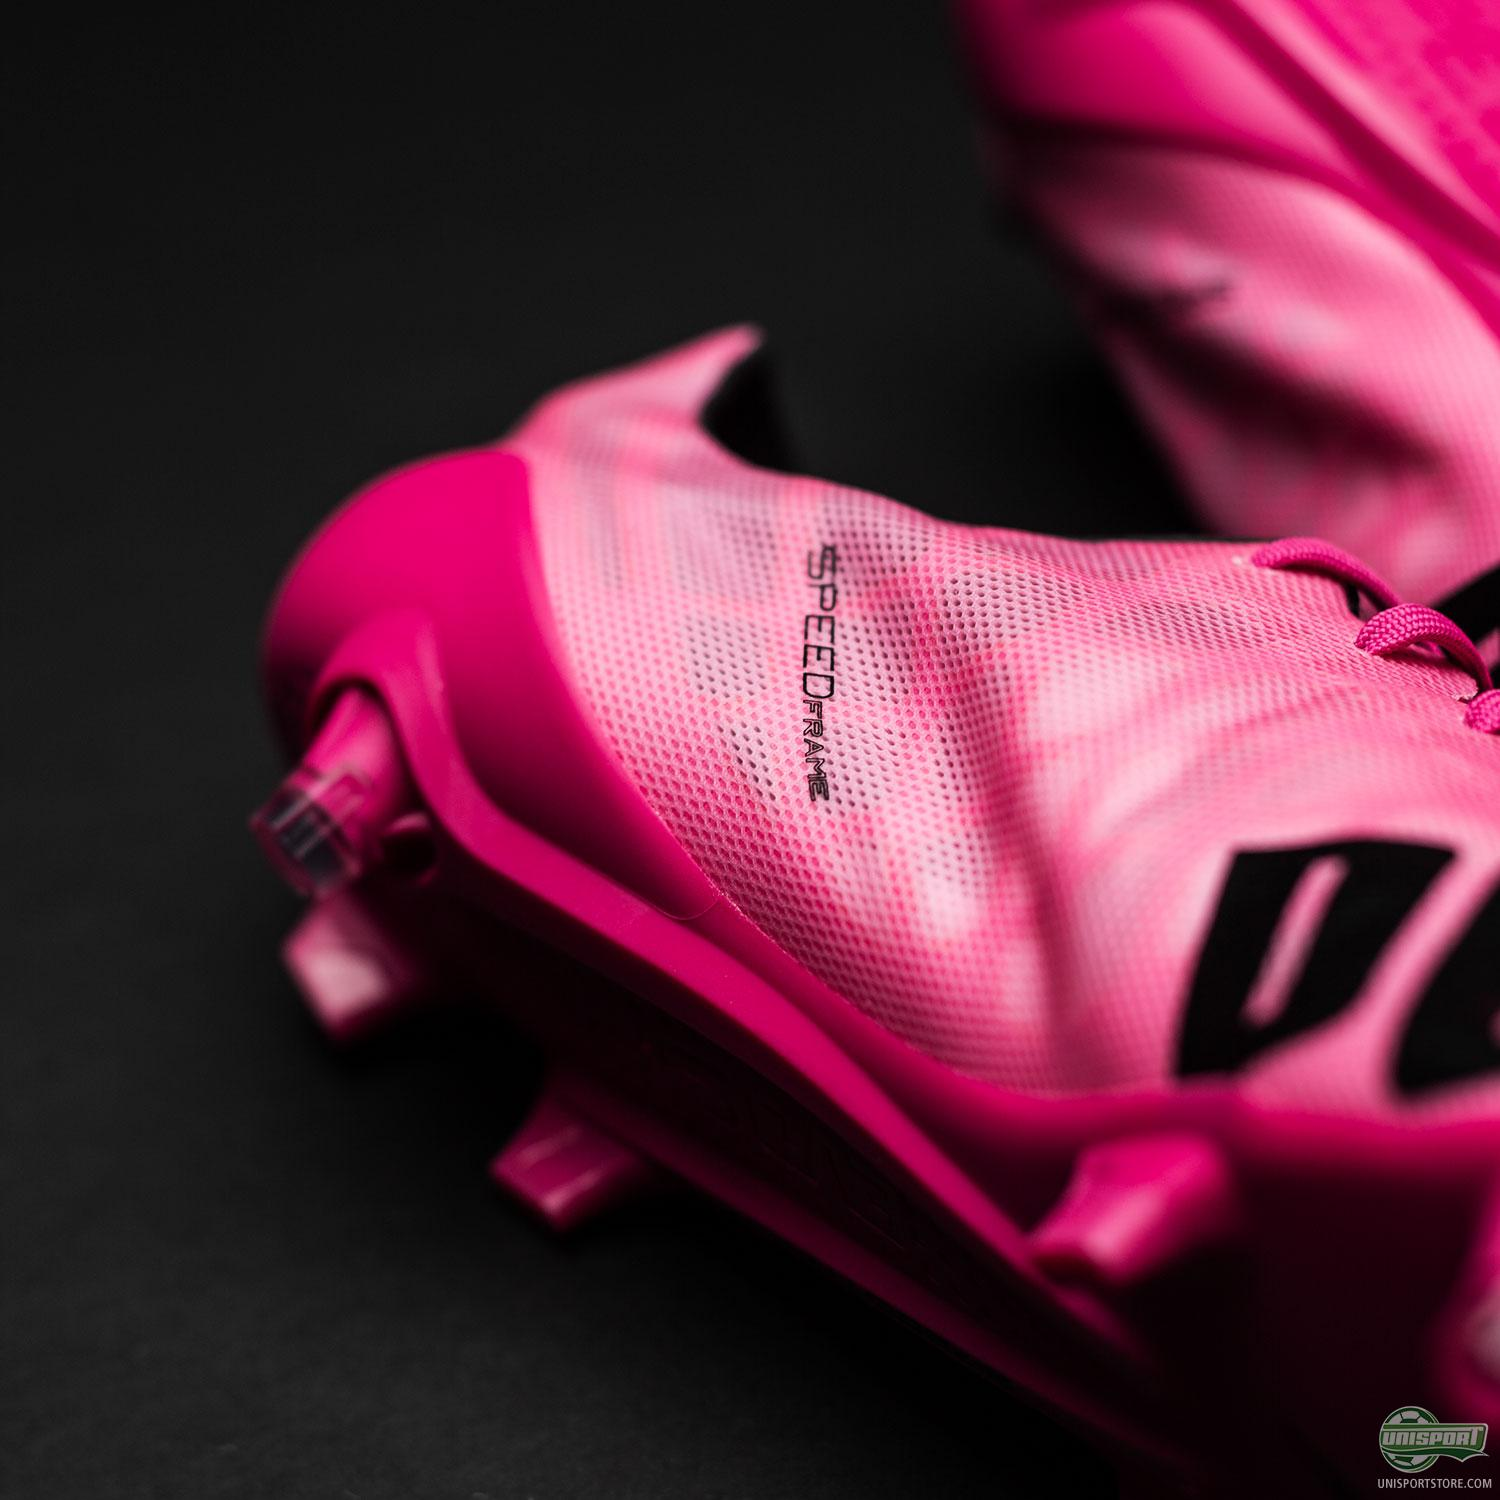 Puma project pink celebrity soccer game